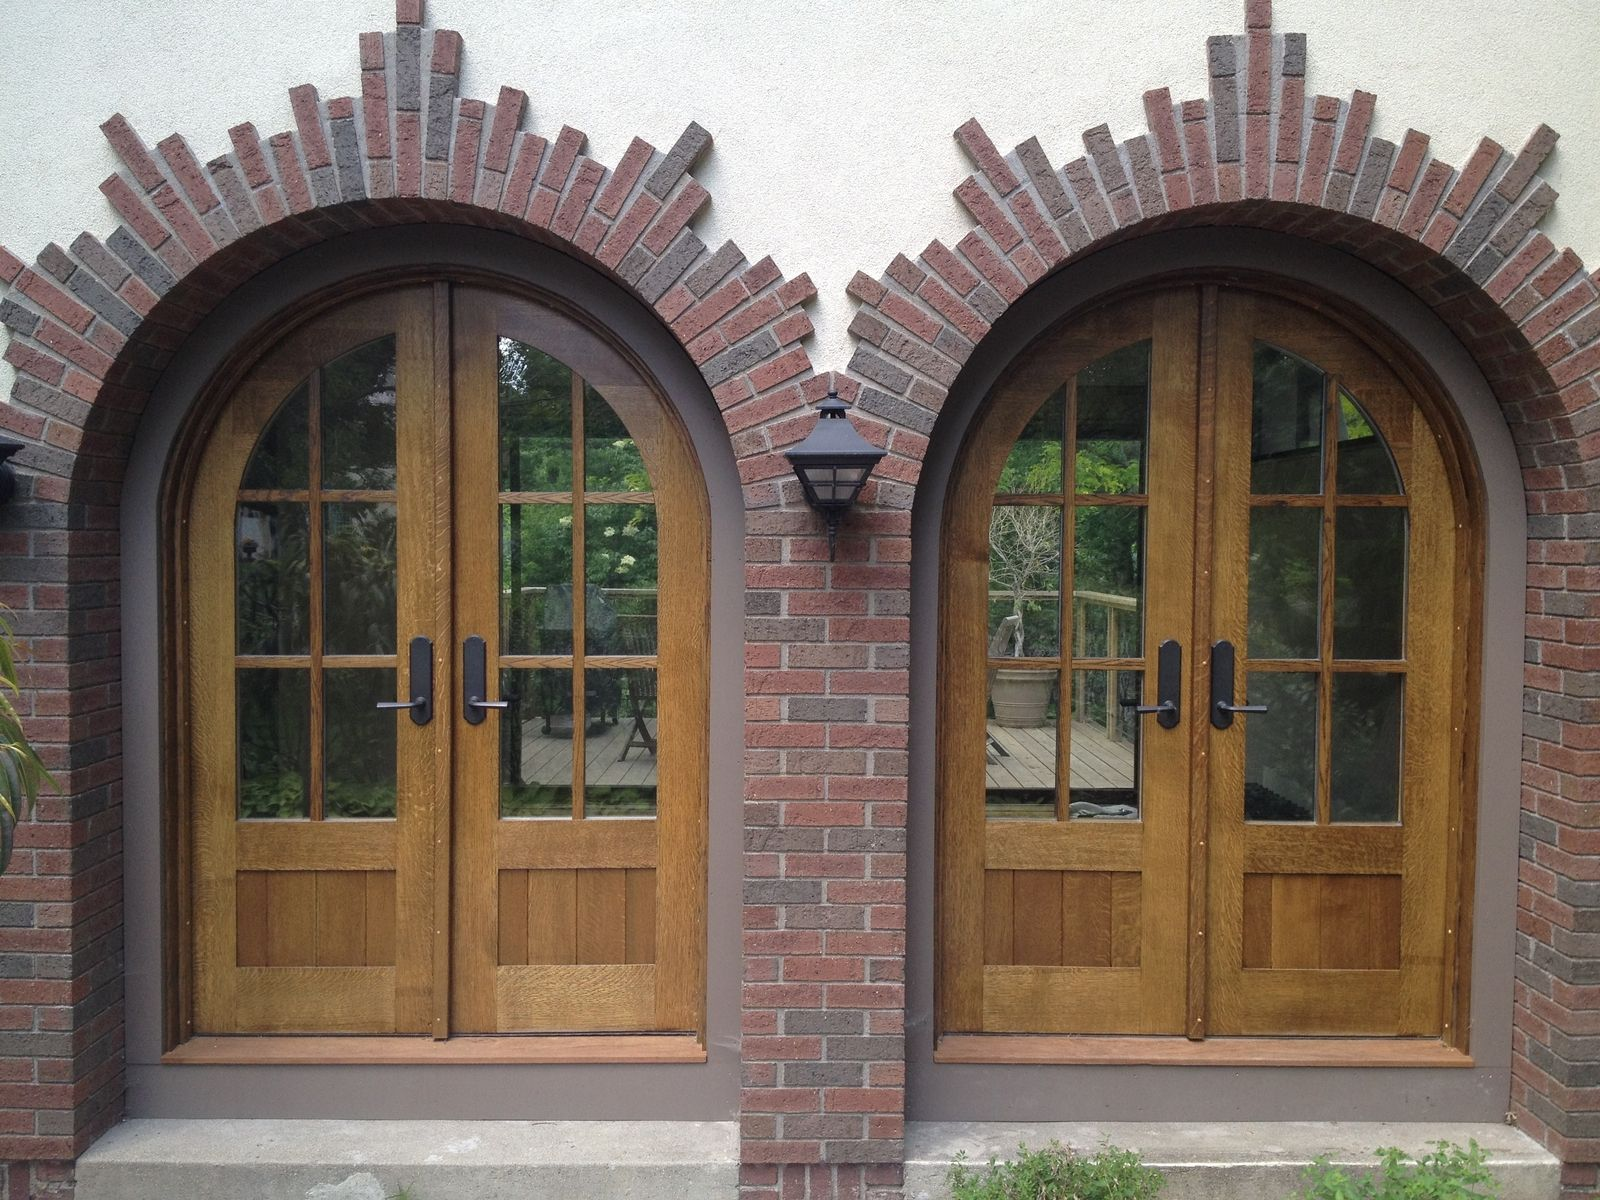 Custom Arched Quarter Sawn White Oak Entry Doors by Huisman Concepts ...